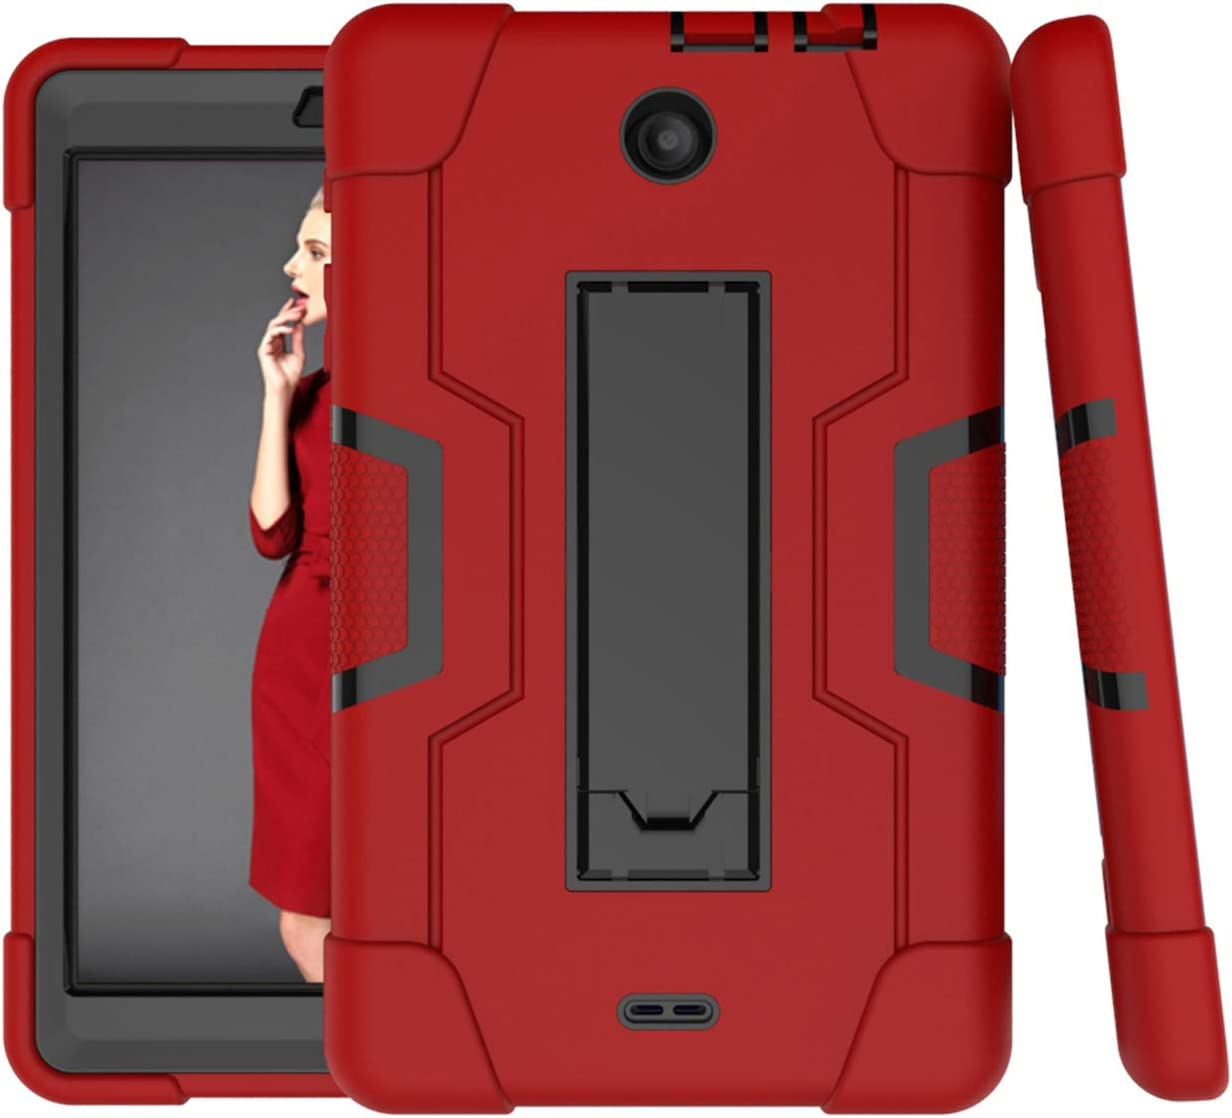 For Alcatel 3T 8.0 2018 Case,Alcatel Joy Tab 8.0 2019 Case,Cherrry Heavy Duty Rugged Hybrid Shockproof Full-Body Protective Case Build in Kickstand With Screen Protector Film/Stylus Pen (Red/Black)